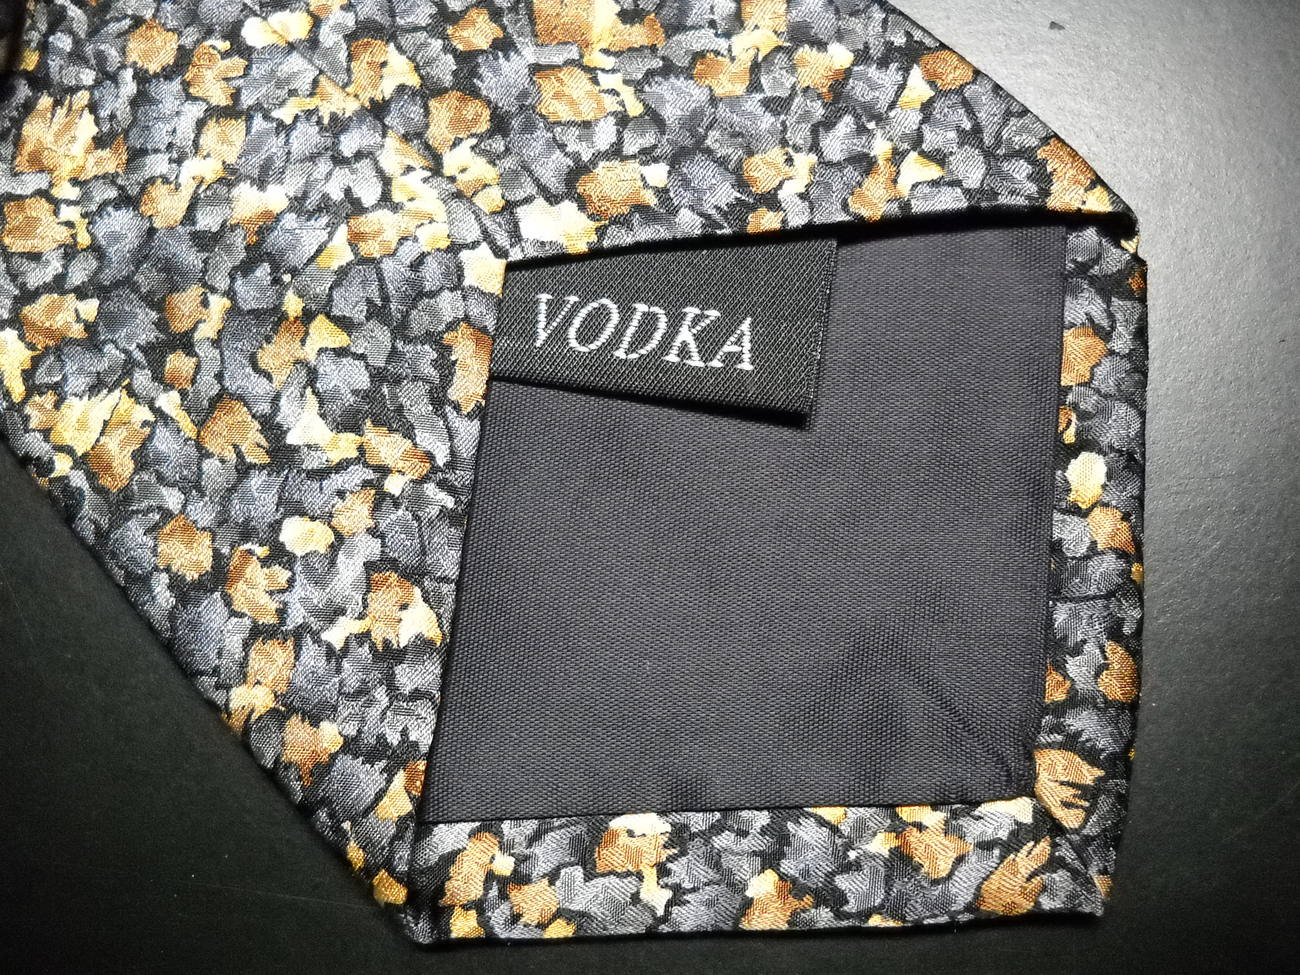 Stonehenge Cocktail Collection Neck Tie Vodka Mottled Grays Browns Golds Black